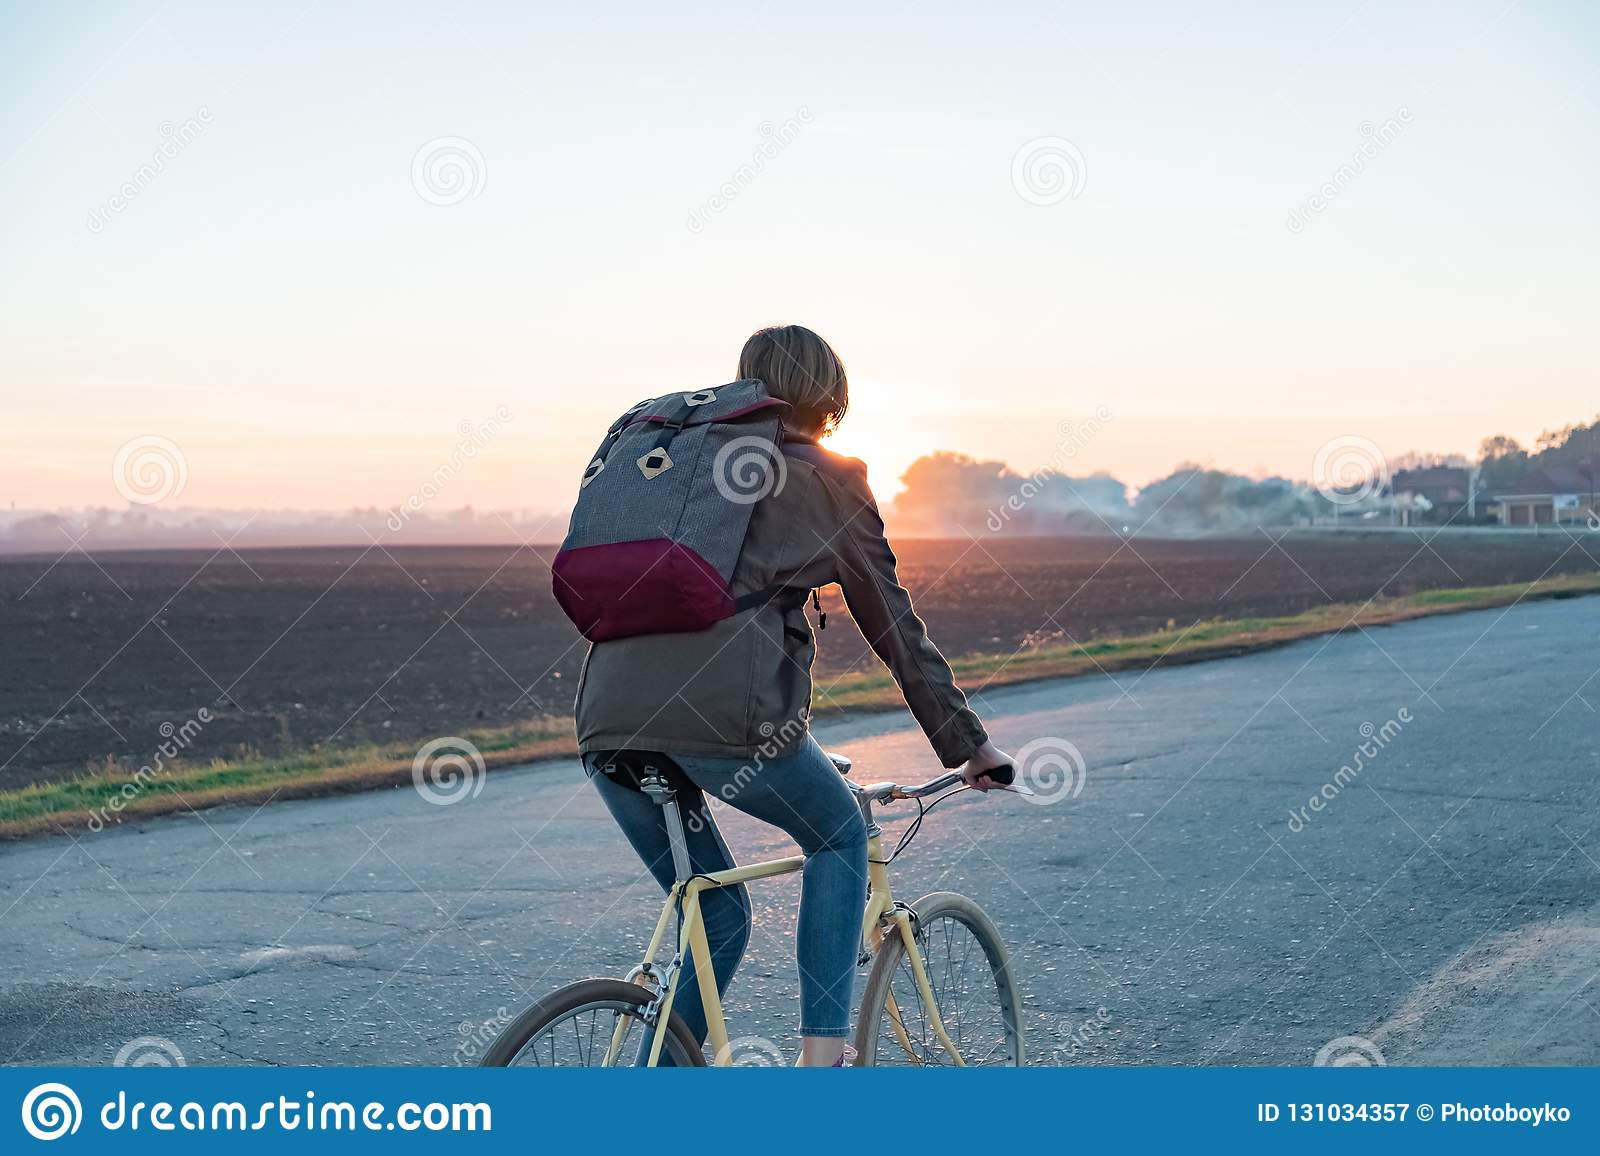 Female commuter riding a bike out of town to a suburban area. Yo